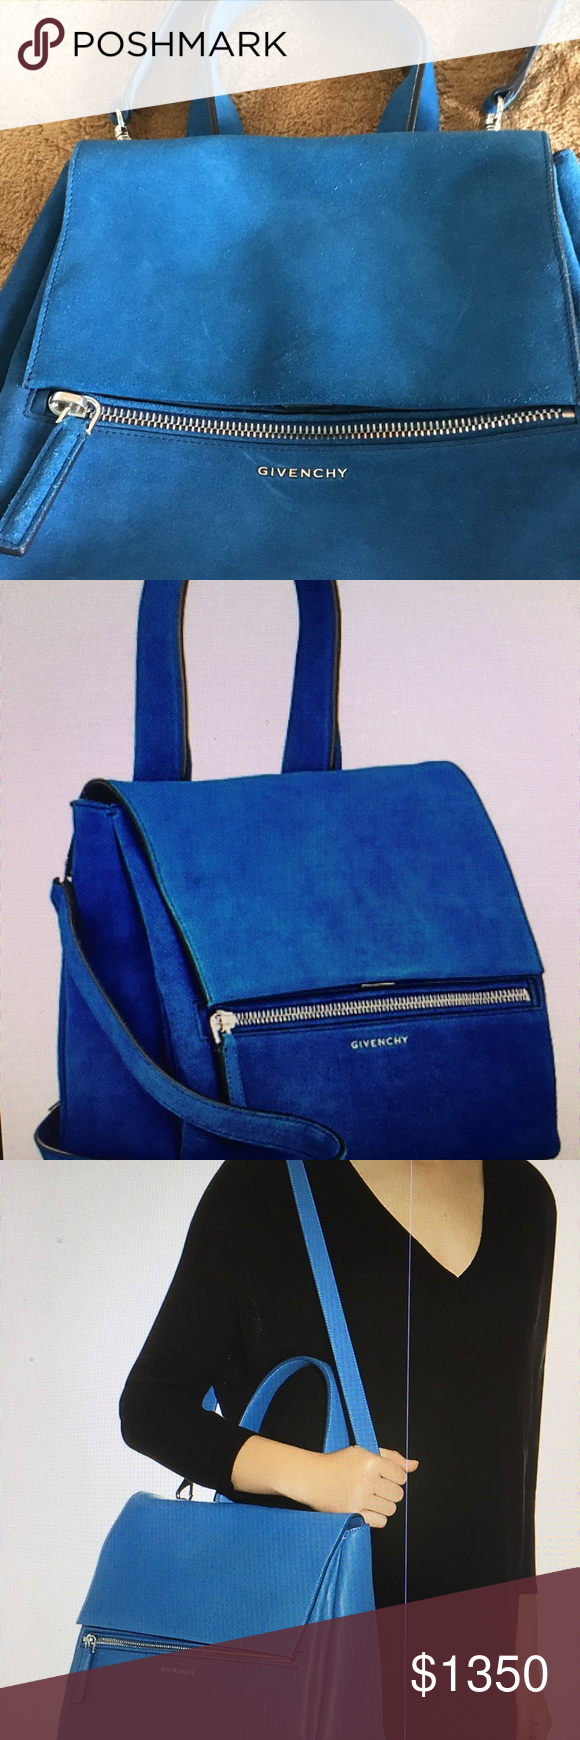 b17a915f6d64 Givenchy Pandora Pure suede leather hand bag Givenchy Pandora Pure suede  leather hand bag  top